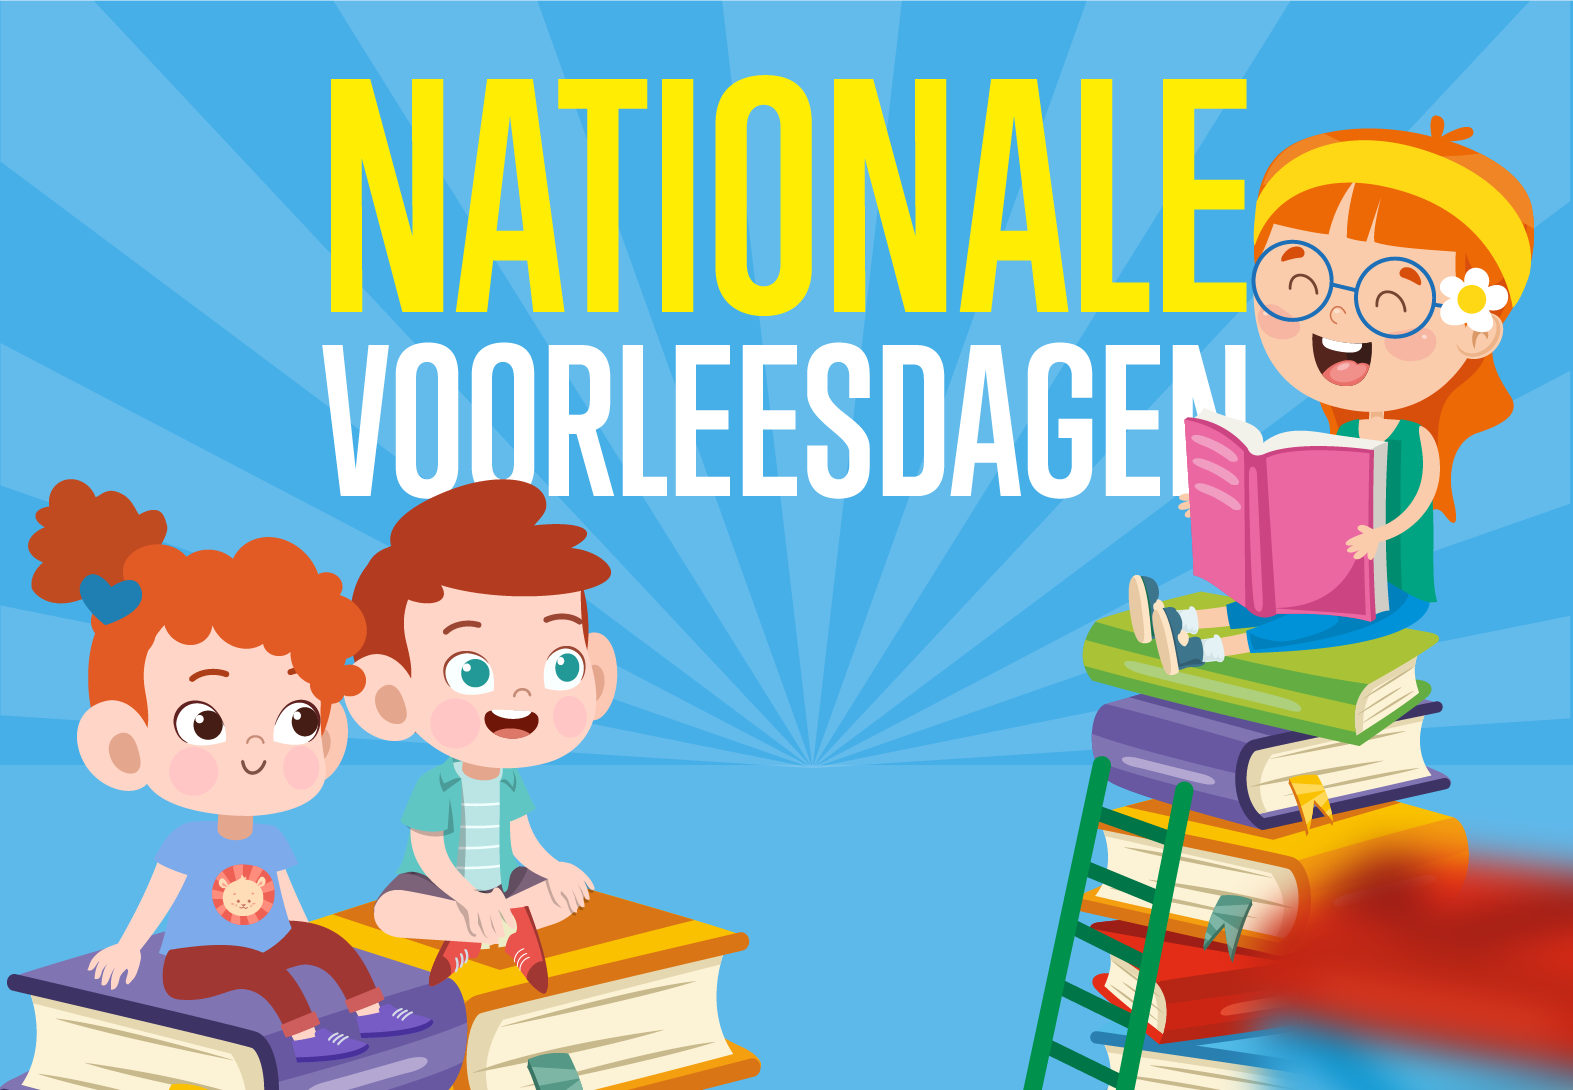 Nationale voorleesdag 22 jan - 1 feb 2020